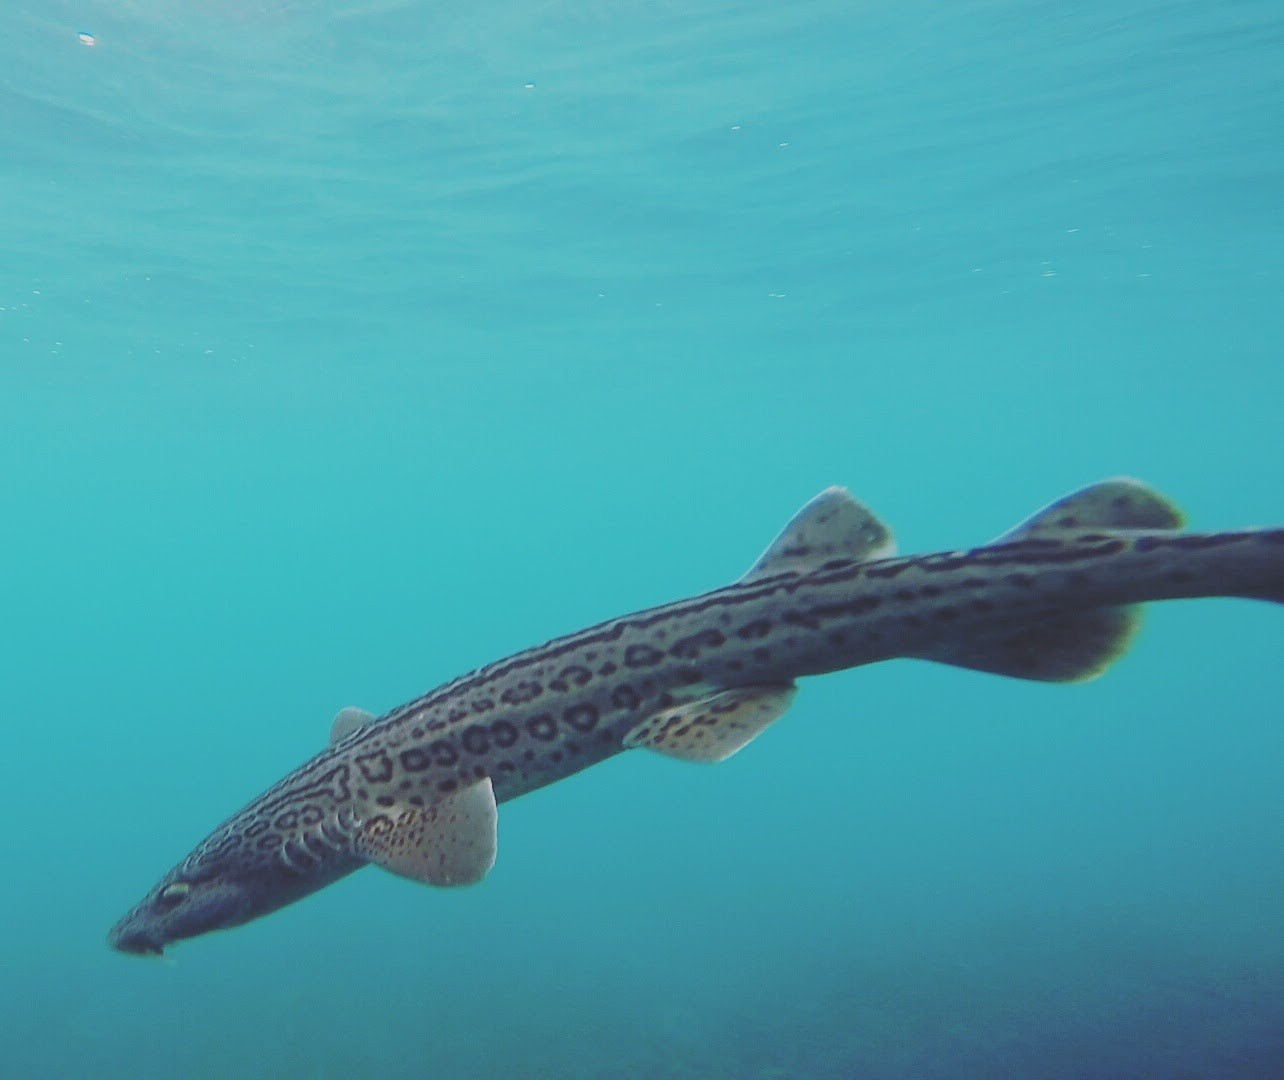 After being tagged during an Oceans Research Institute tag and release project this leopard catshark, an endemic species of Southern African shark, swims off. Photo by Esther Jacobs, Oceans Research Institute.